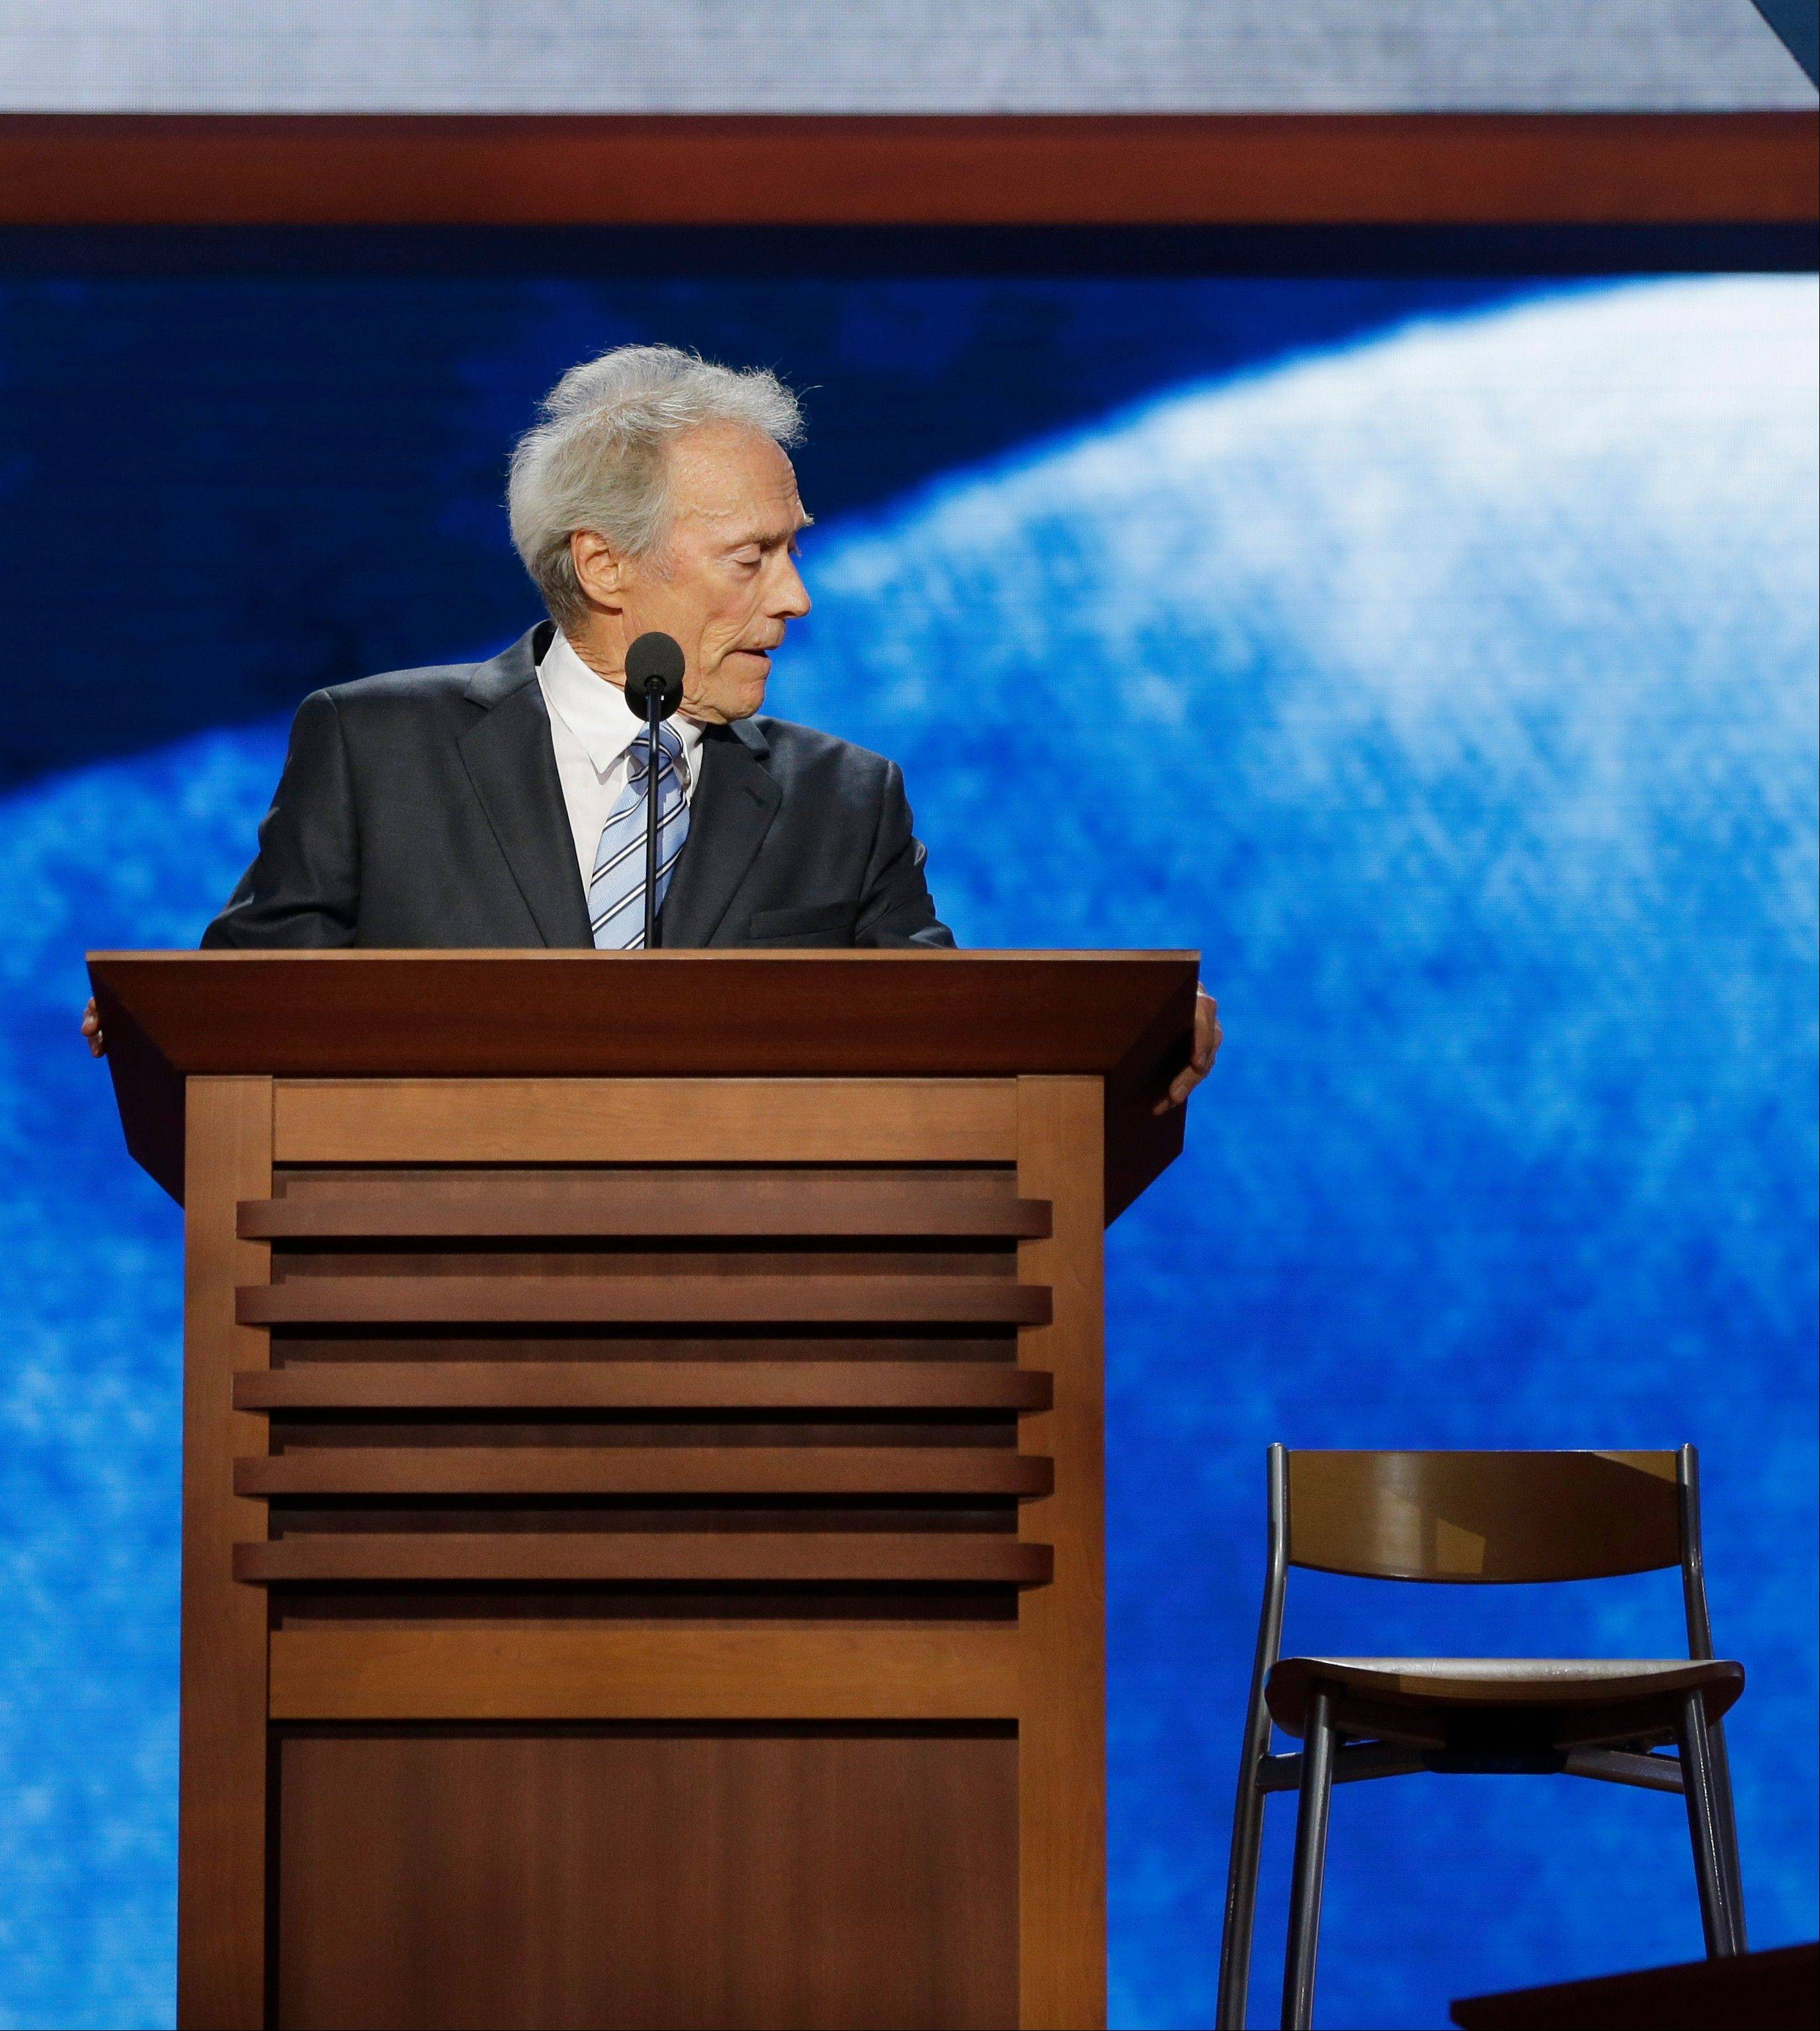 More than a week after Clint Eastwood delivered a speech to the Republican National Convention, the veteran Hollywood actor-director continues to be mocked for his peculiar, rambling conversation with an imaginary President Barack Obama in an empty chair onstage.